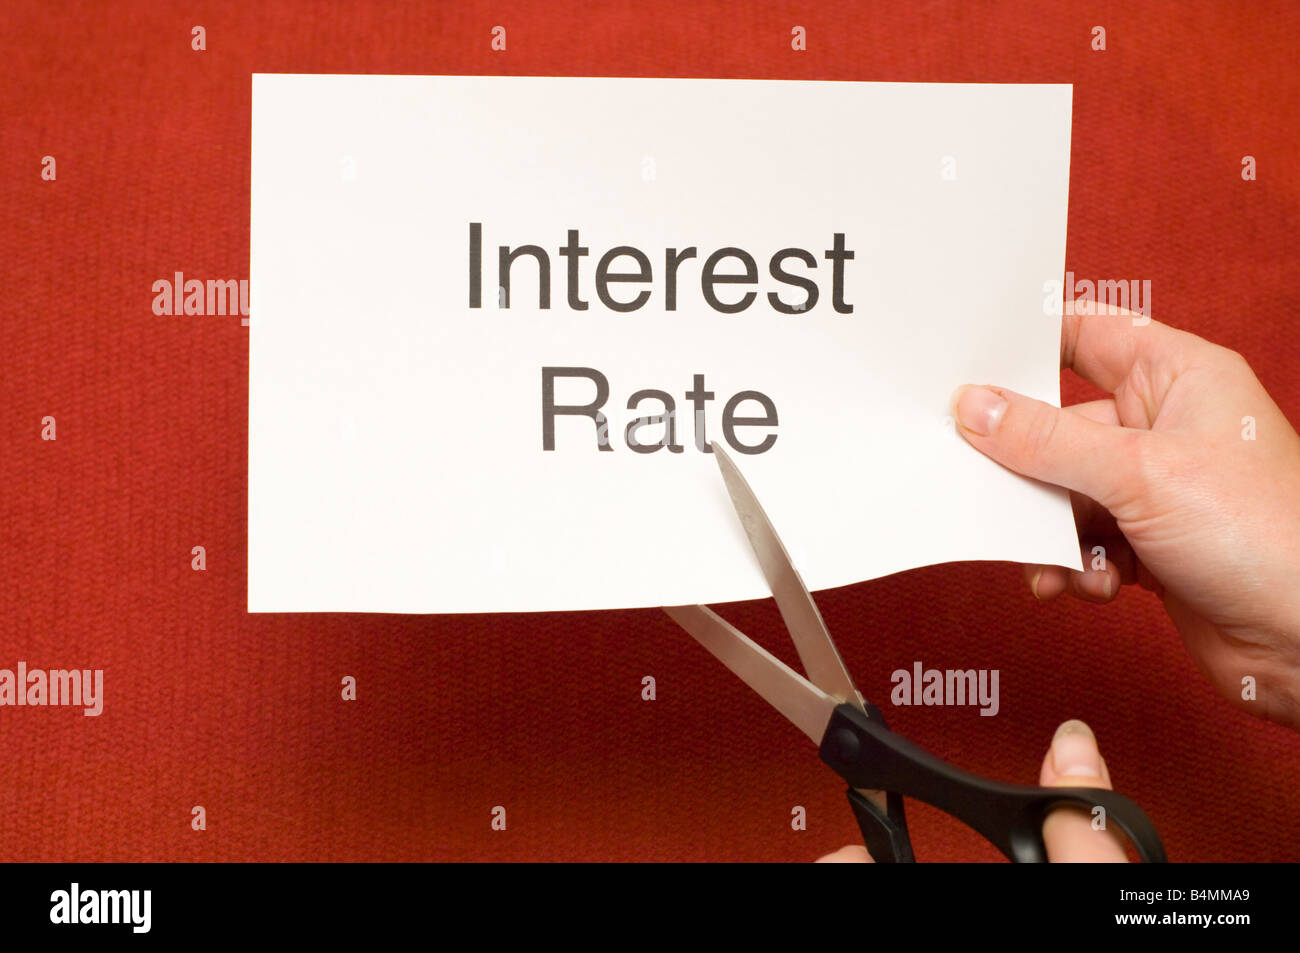 Picture of person cutting a piece of paper with 'Interest Rate' written on it using a pair of scissors - Stock Image